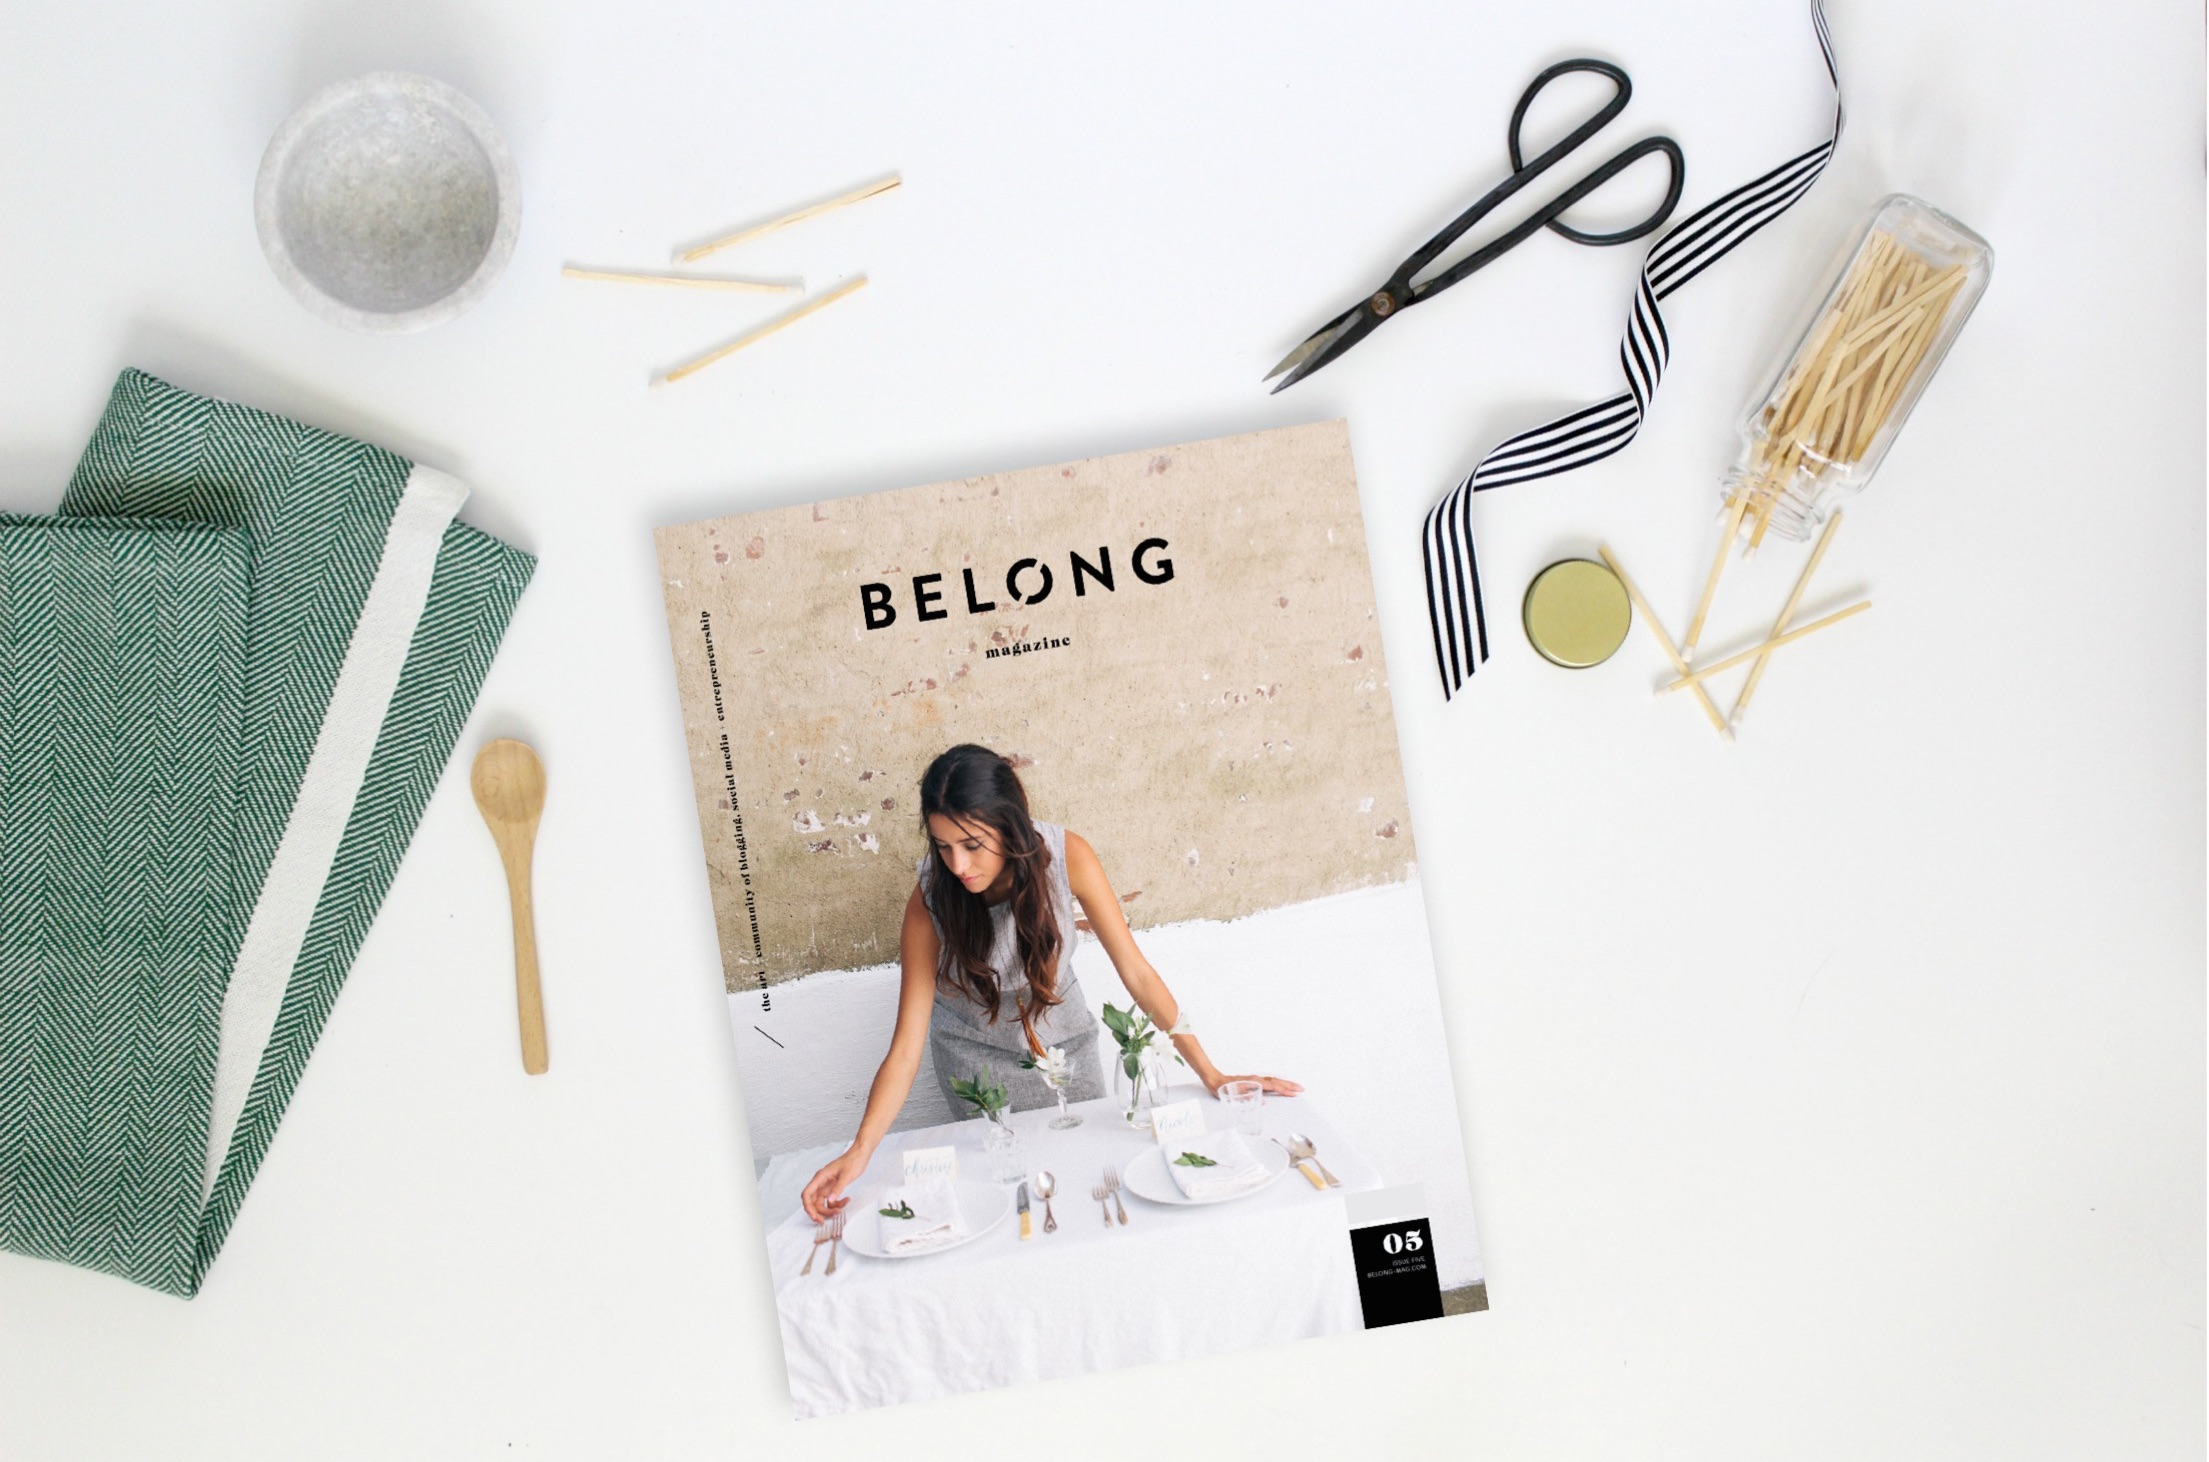 belong magazine issue 05 contents features contributors